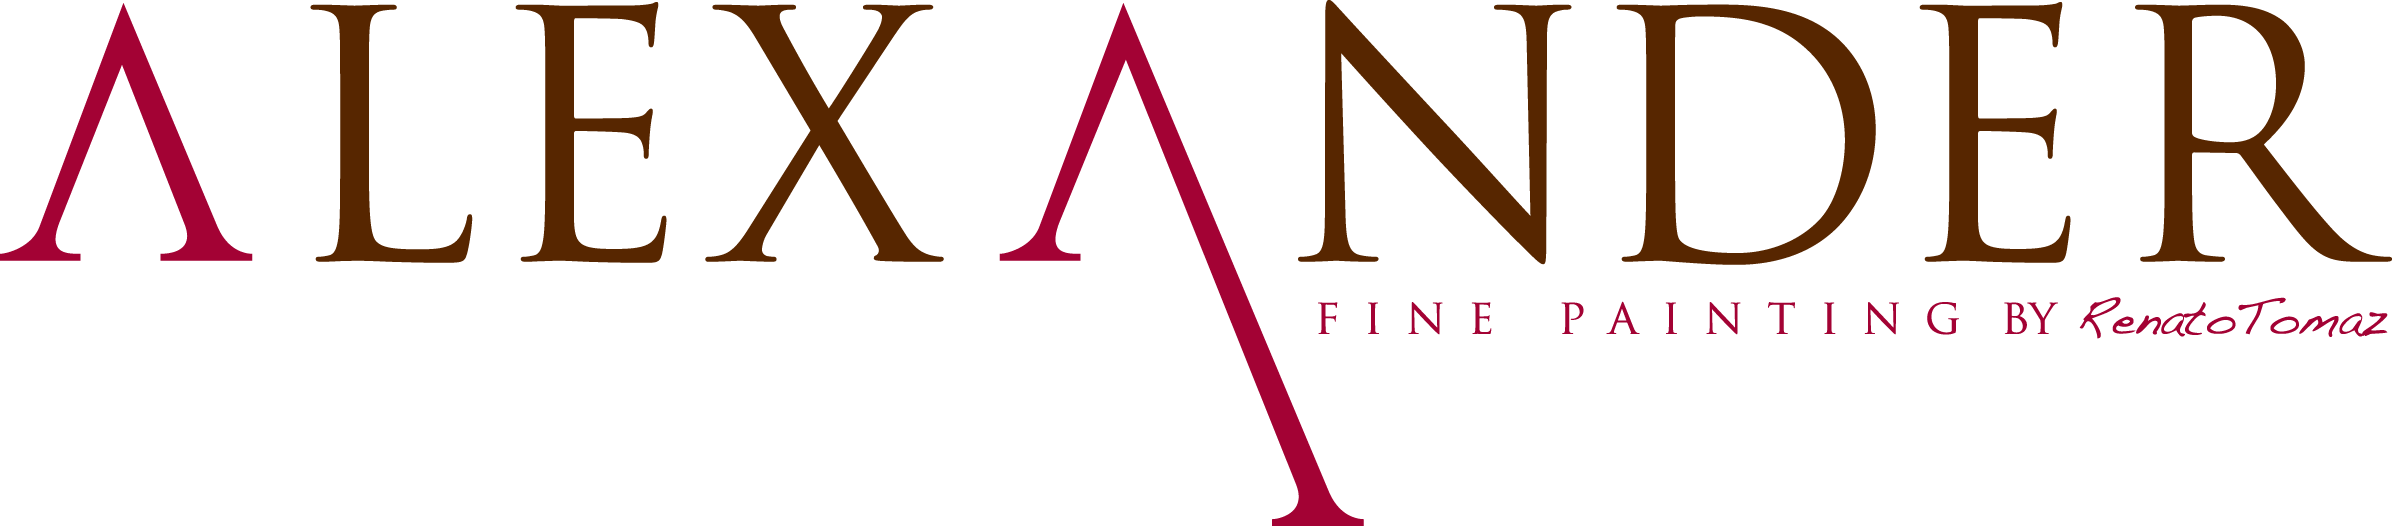 Official website of Alexander Fine Painting